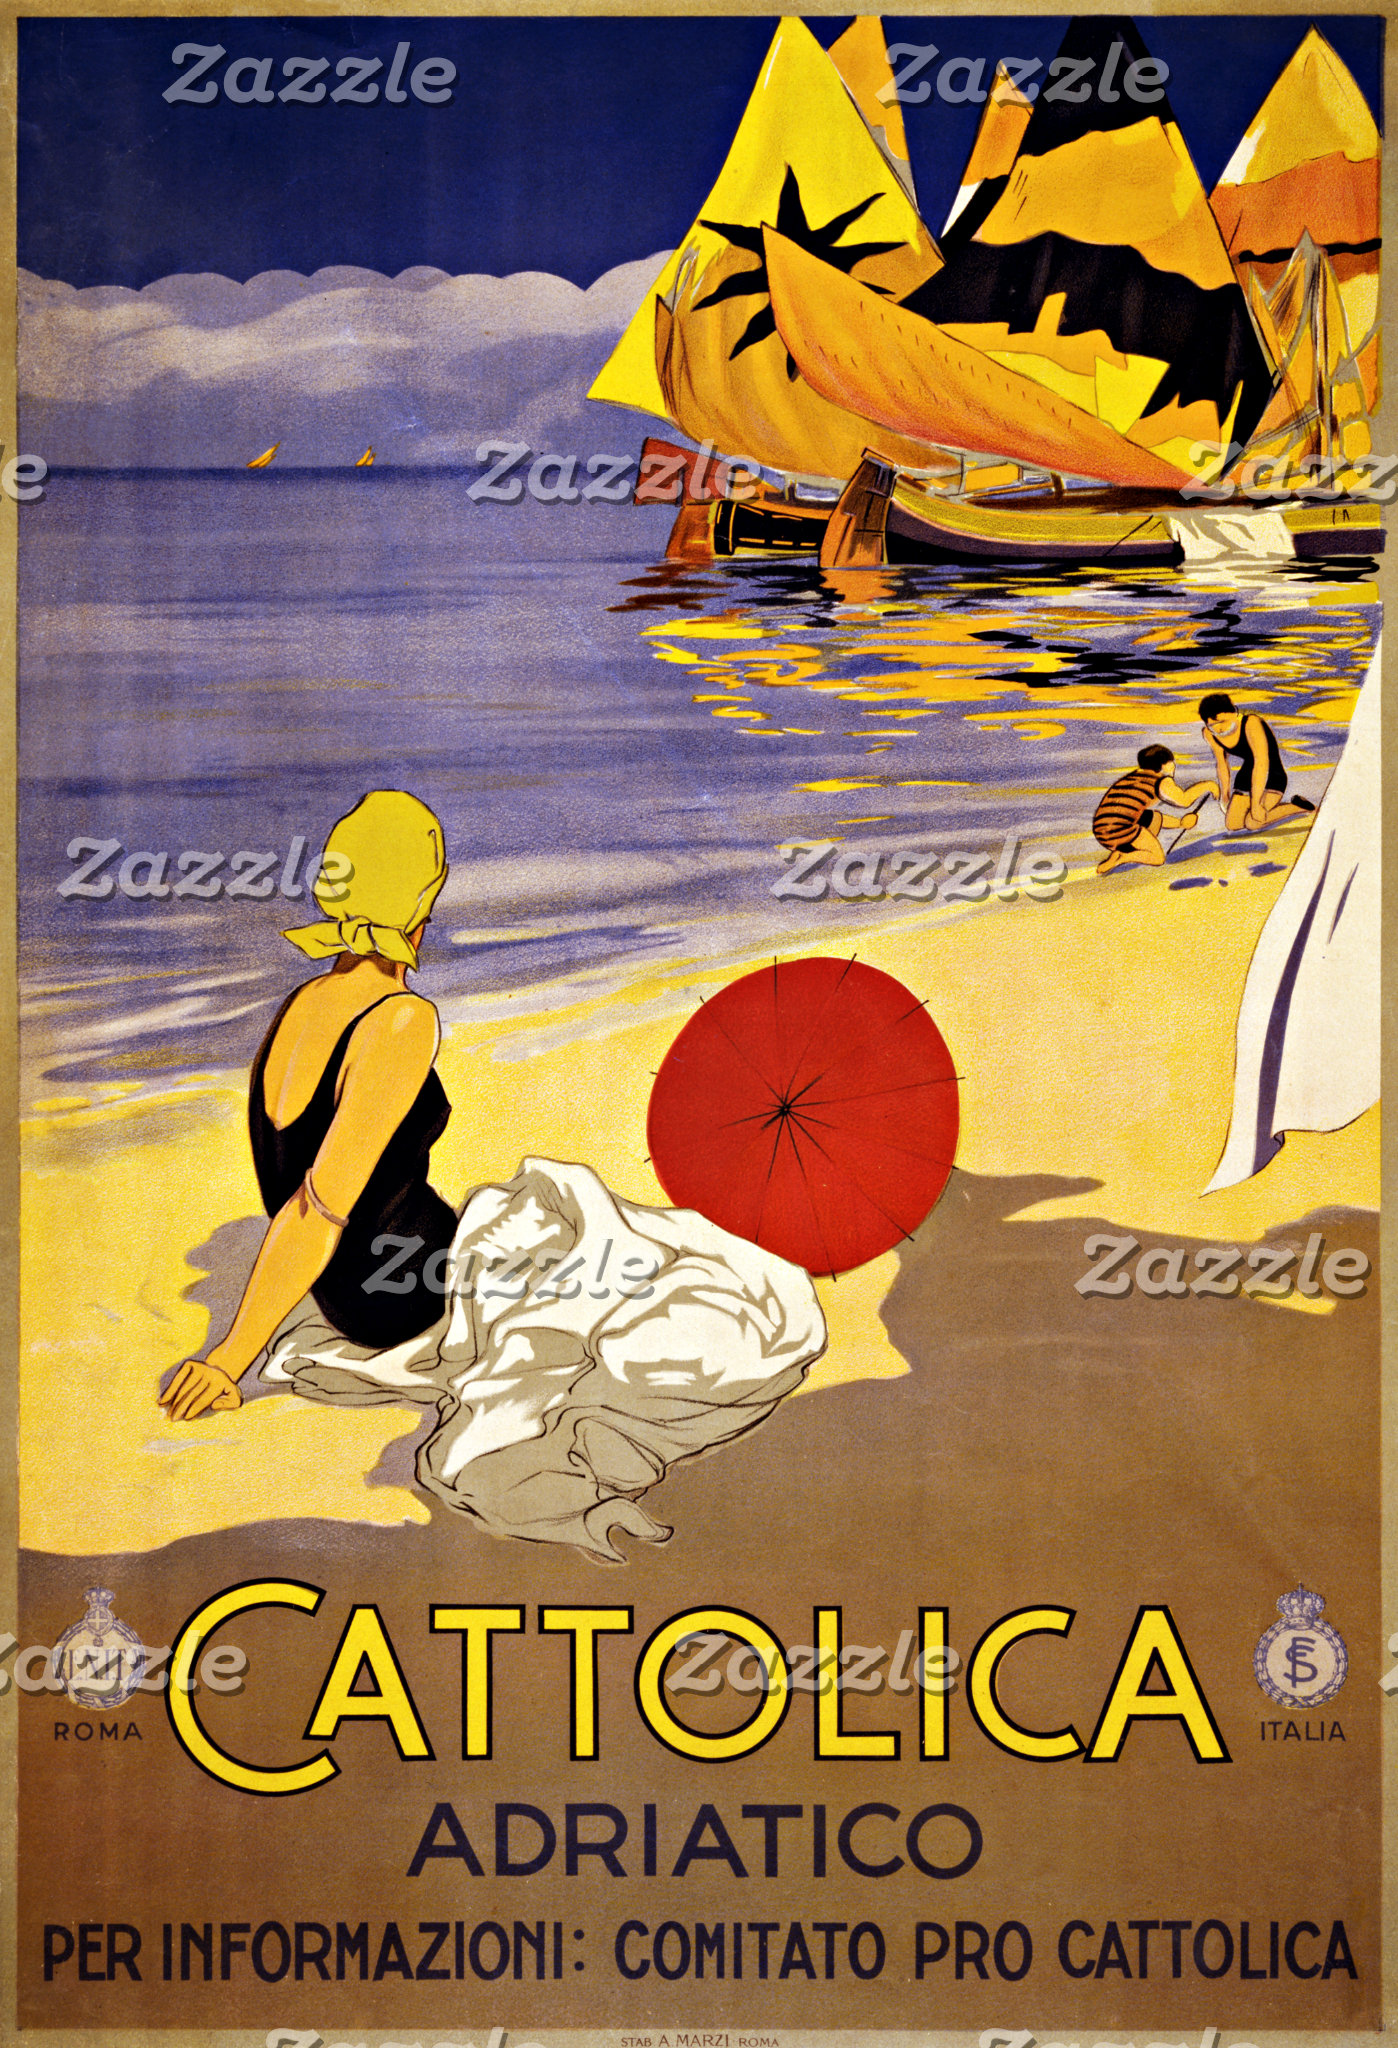 Vintage Travel Posters 2